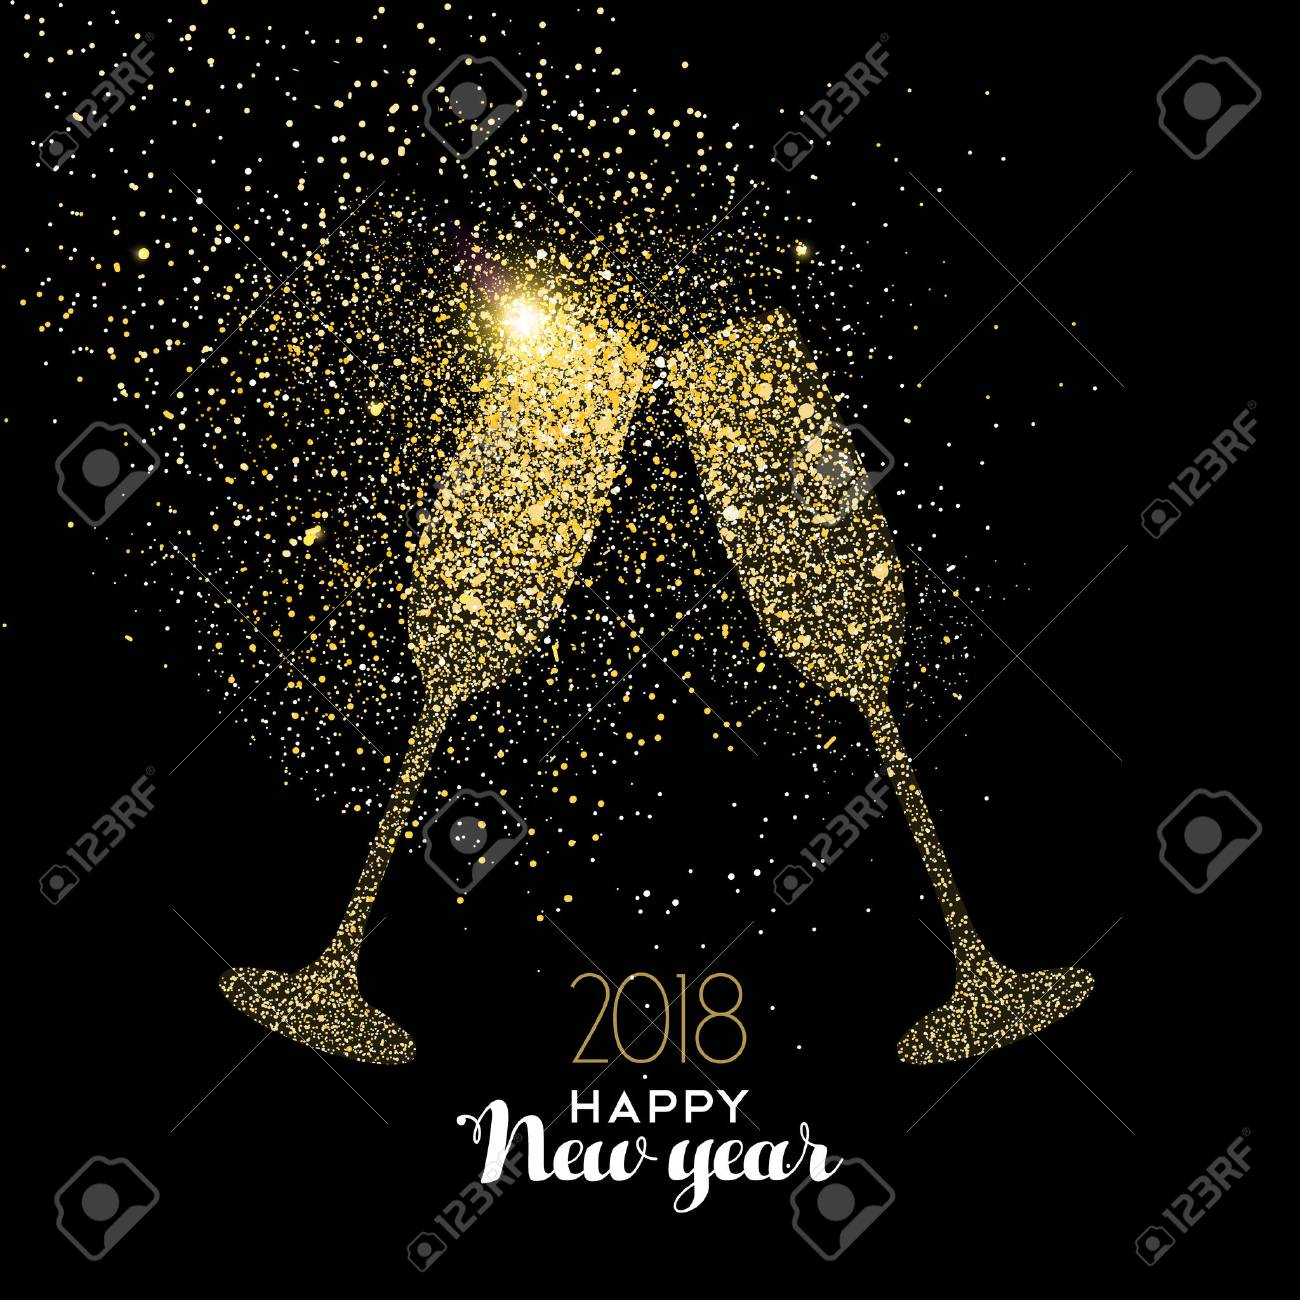 happy new year 2018 gold champagne glass celebration toast made of realistic golden glitter dust